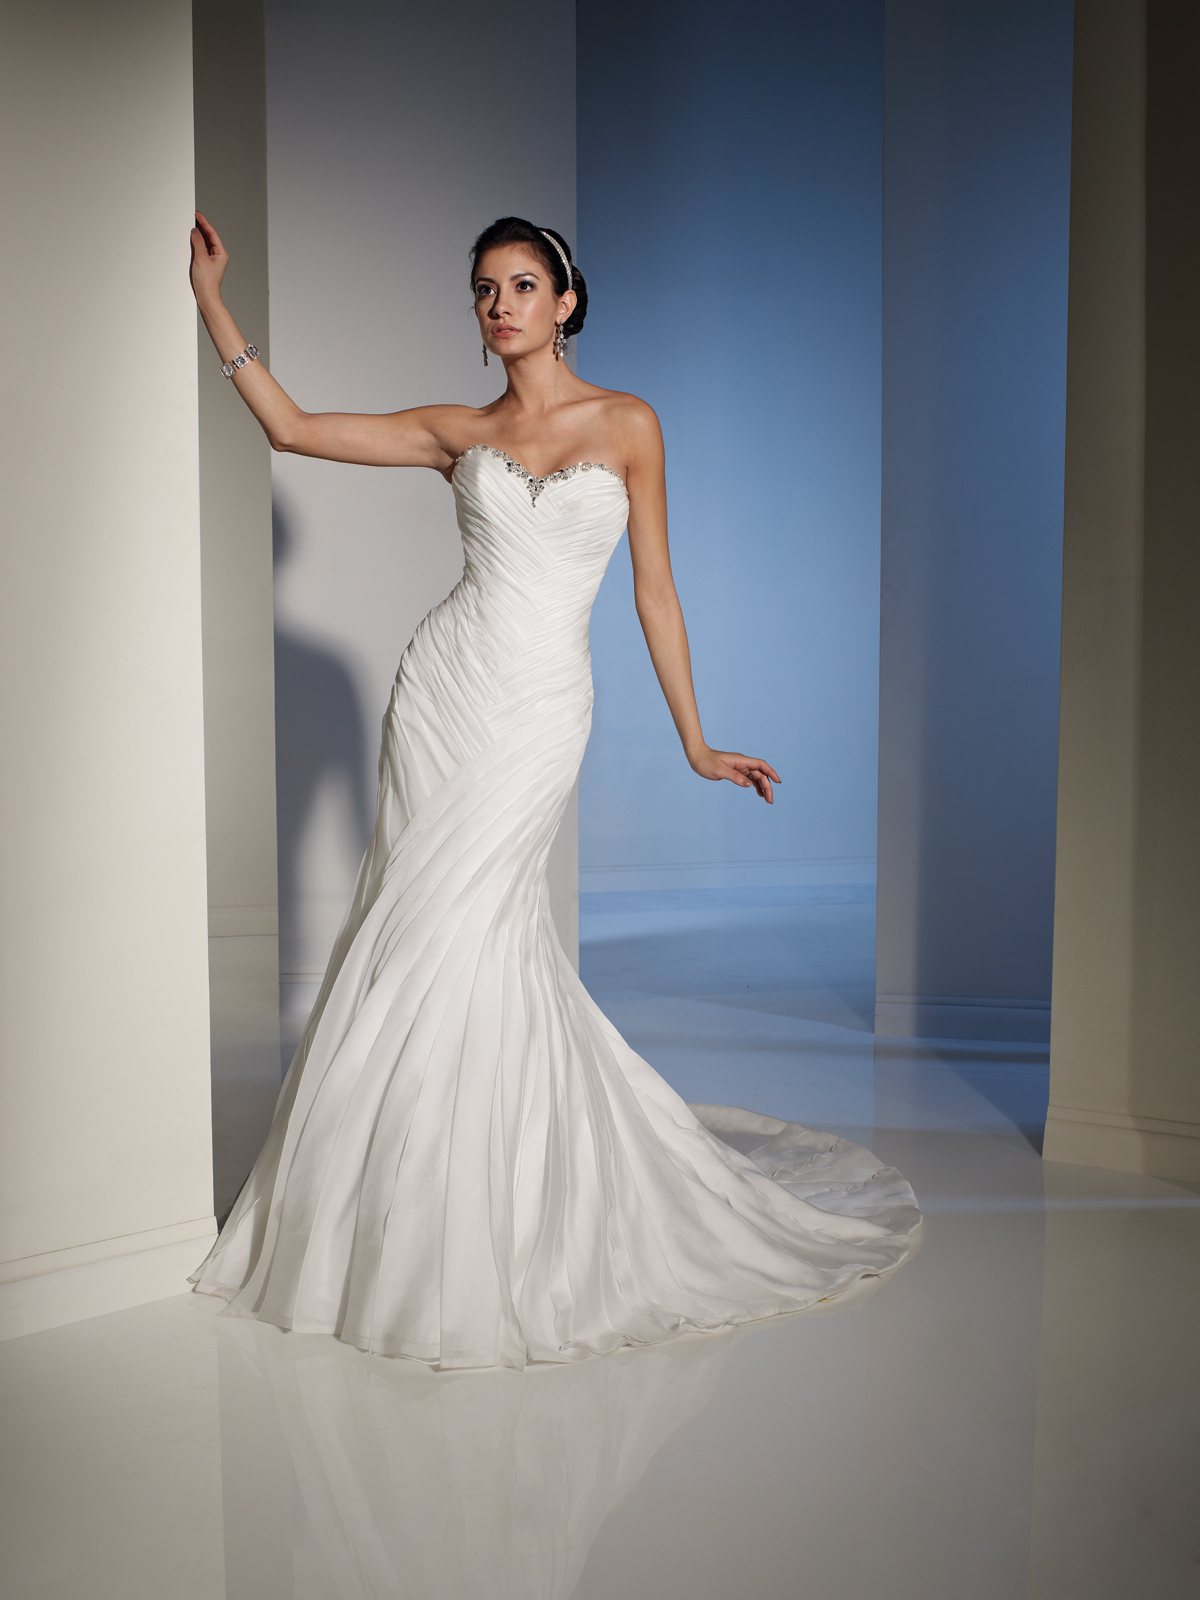 Contemporary Buying Wedding Dress From China Adornment - All Wedding ...